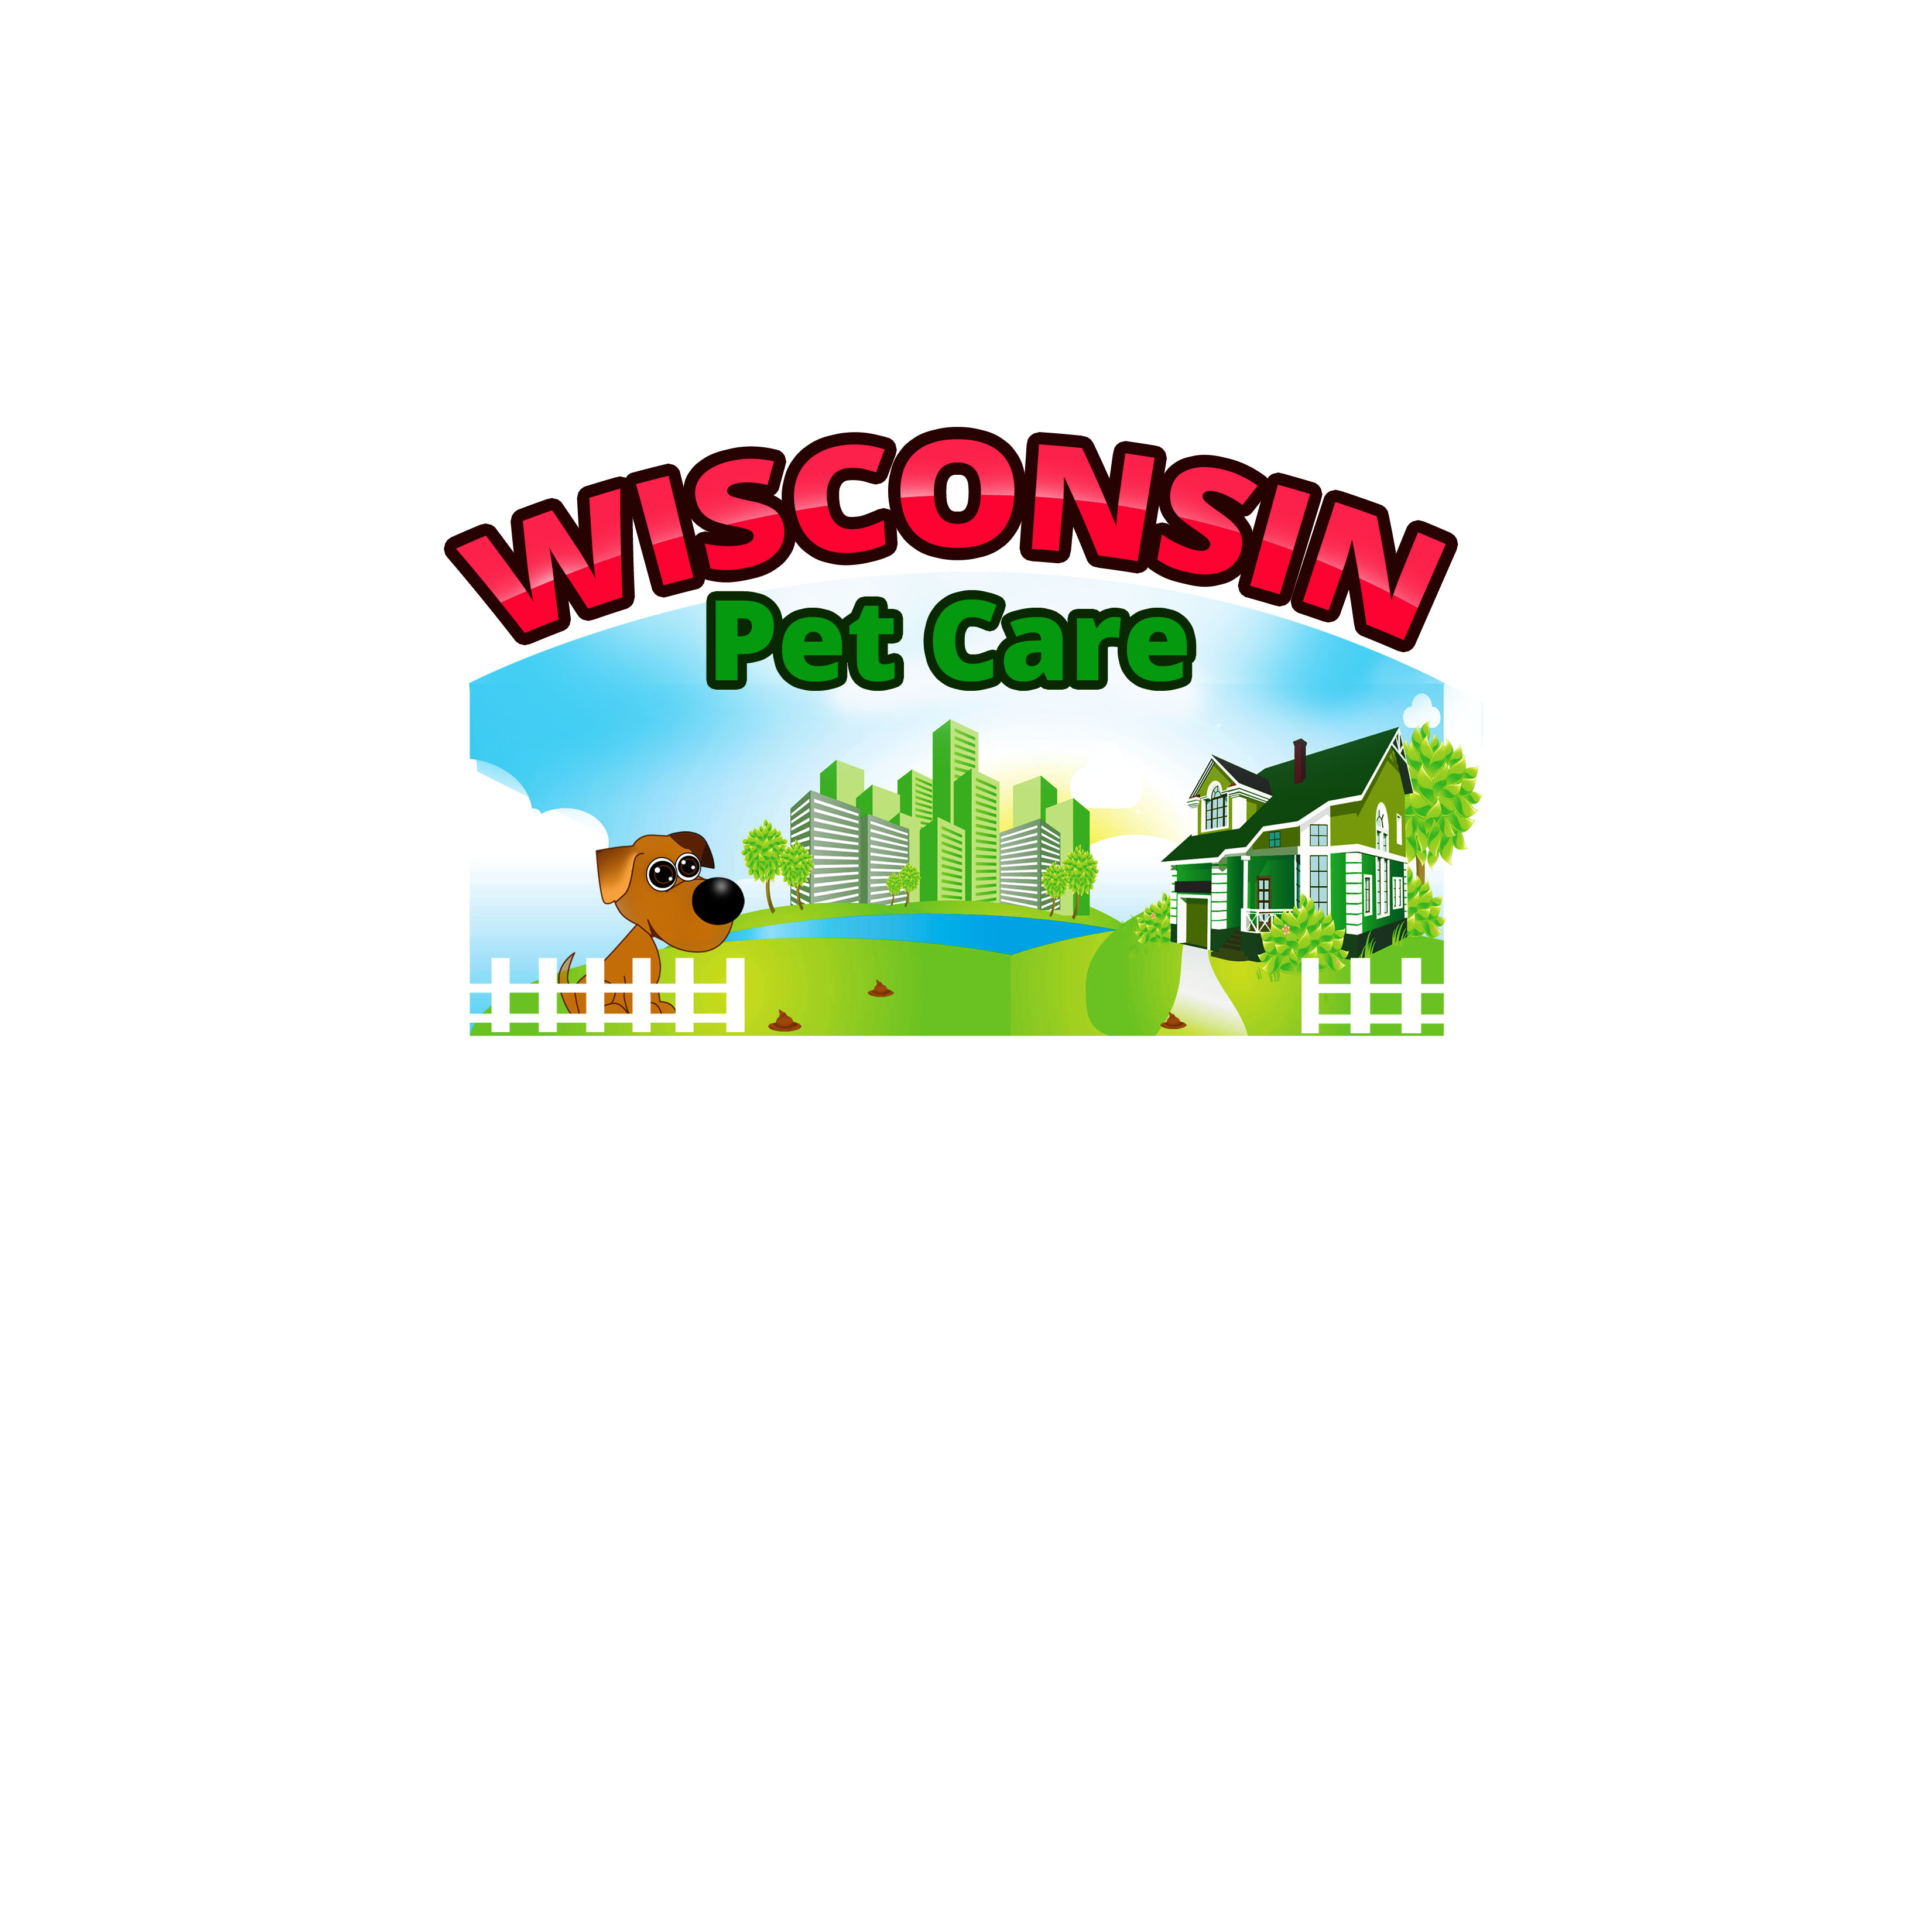 Logo Design by Allan Esclamado - Entry No. 39 in the Logo Design Contest Captivating Logo Design for Wisconsin Pet Care.